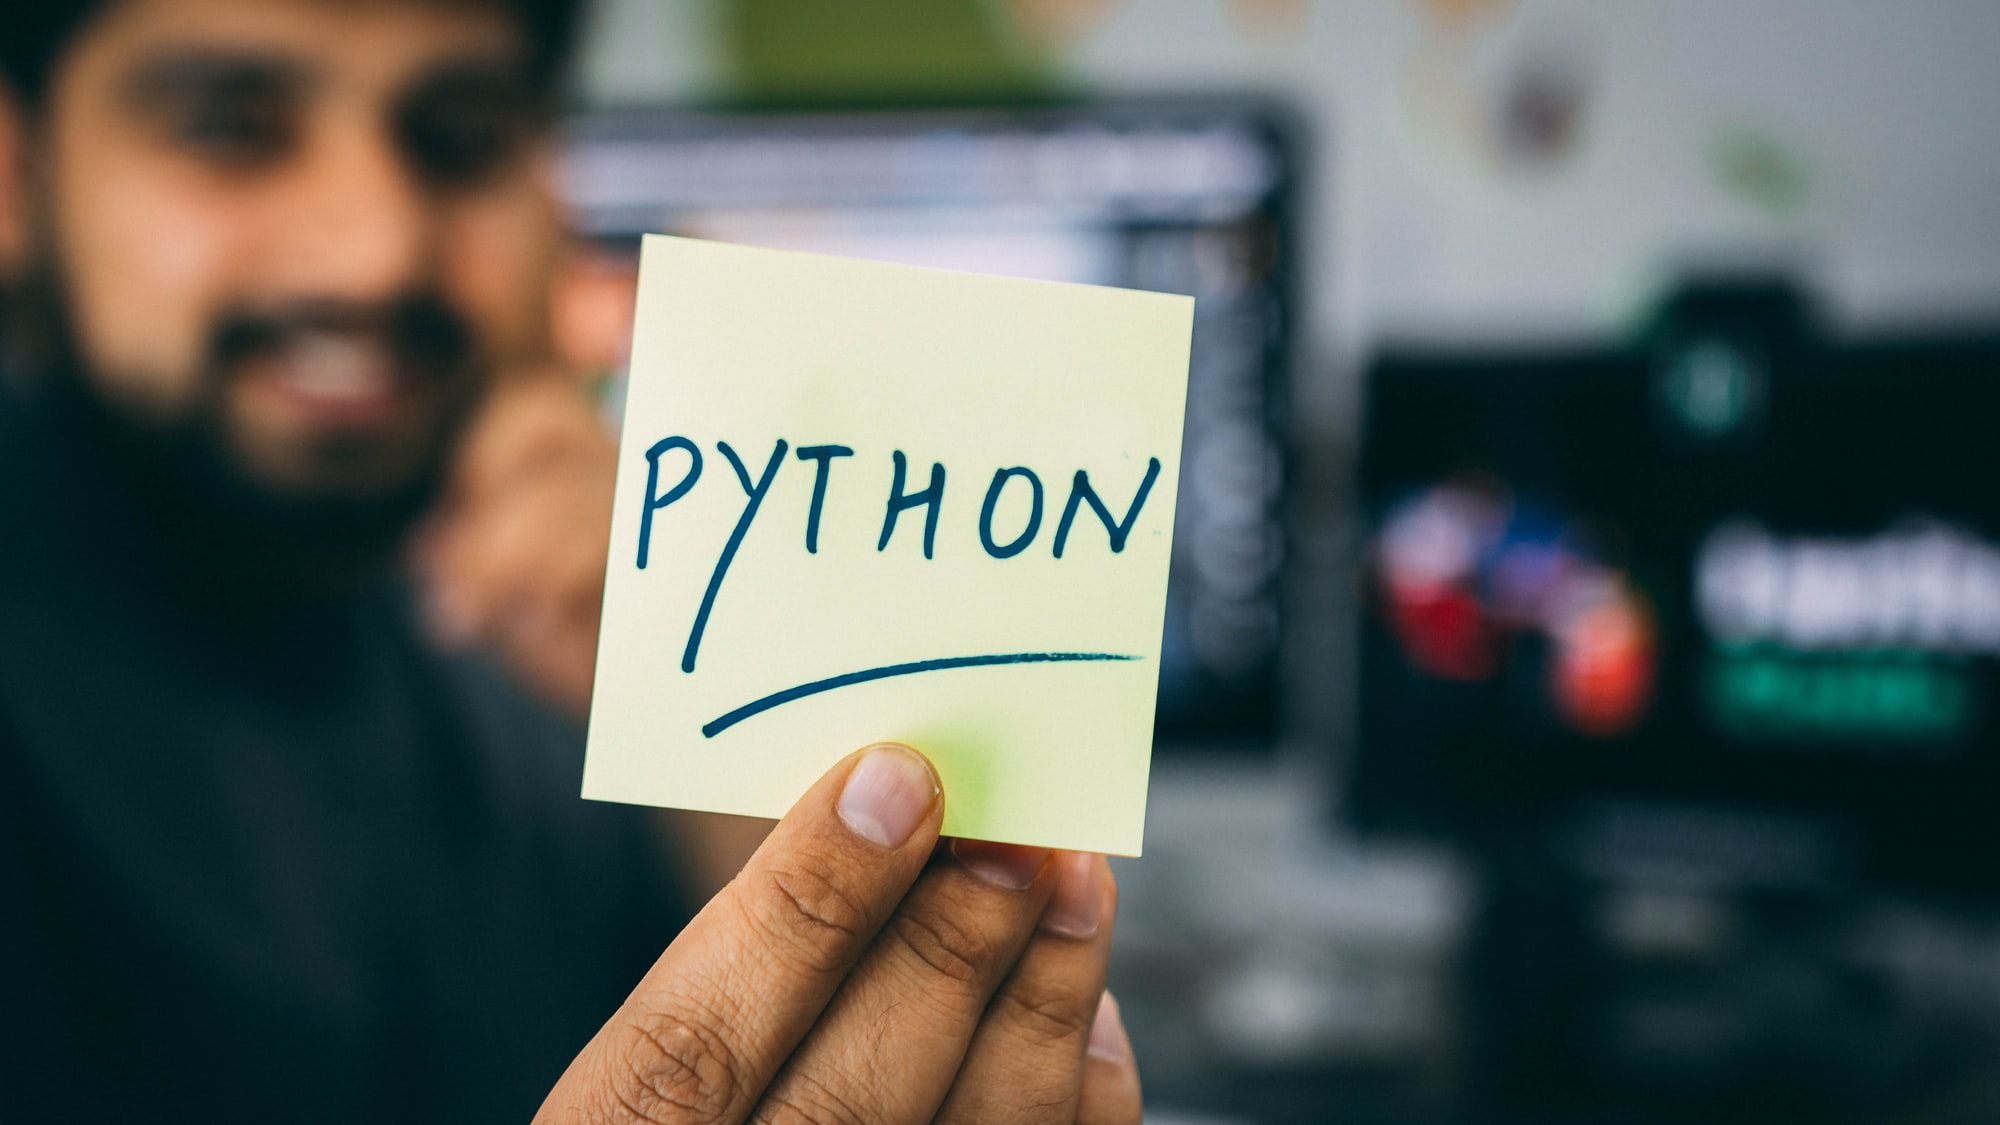 New features in Python 3.8